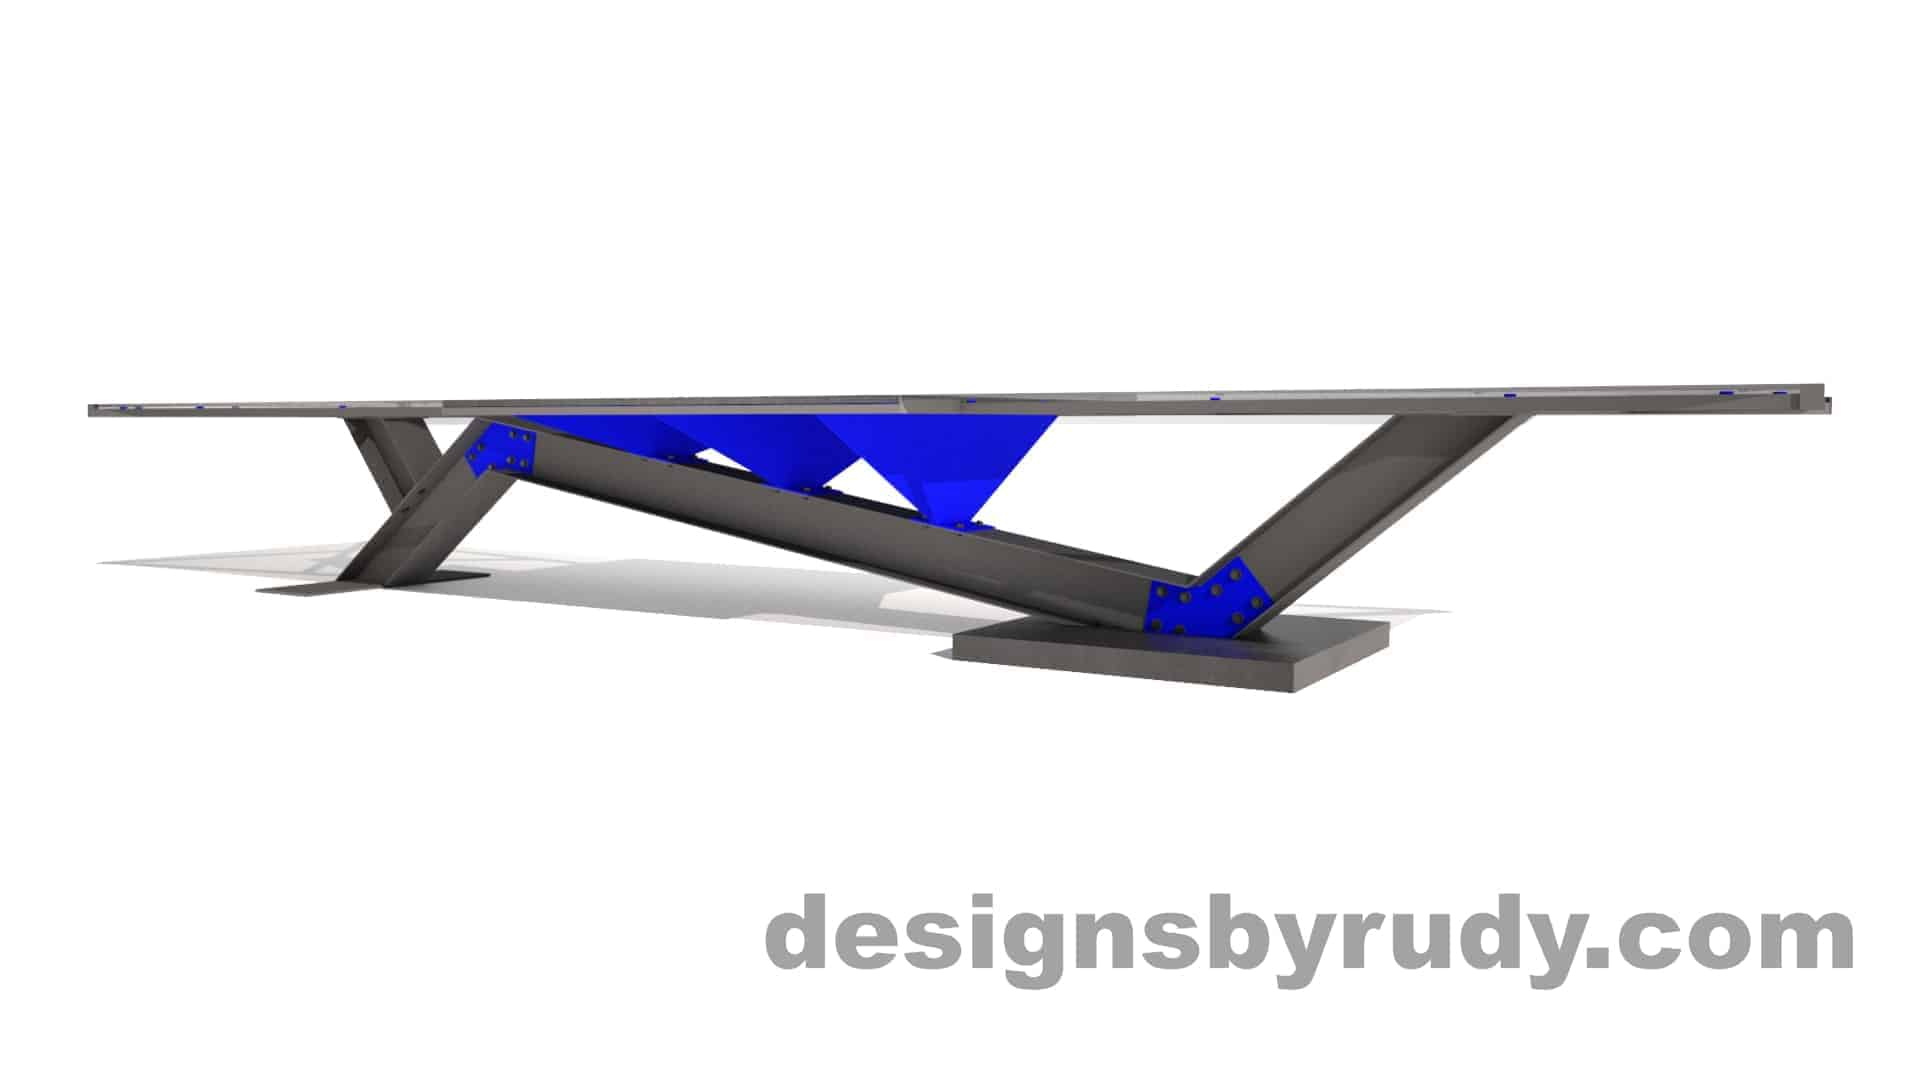 Concrete, steel, glass conference table modern design, full side angle view